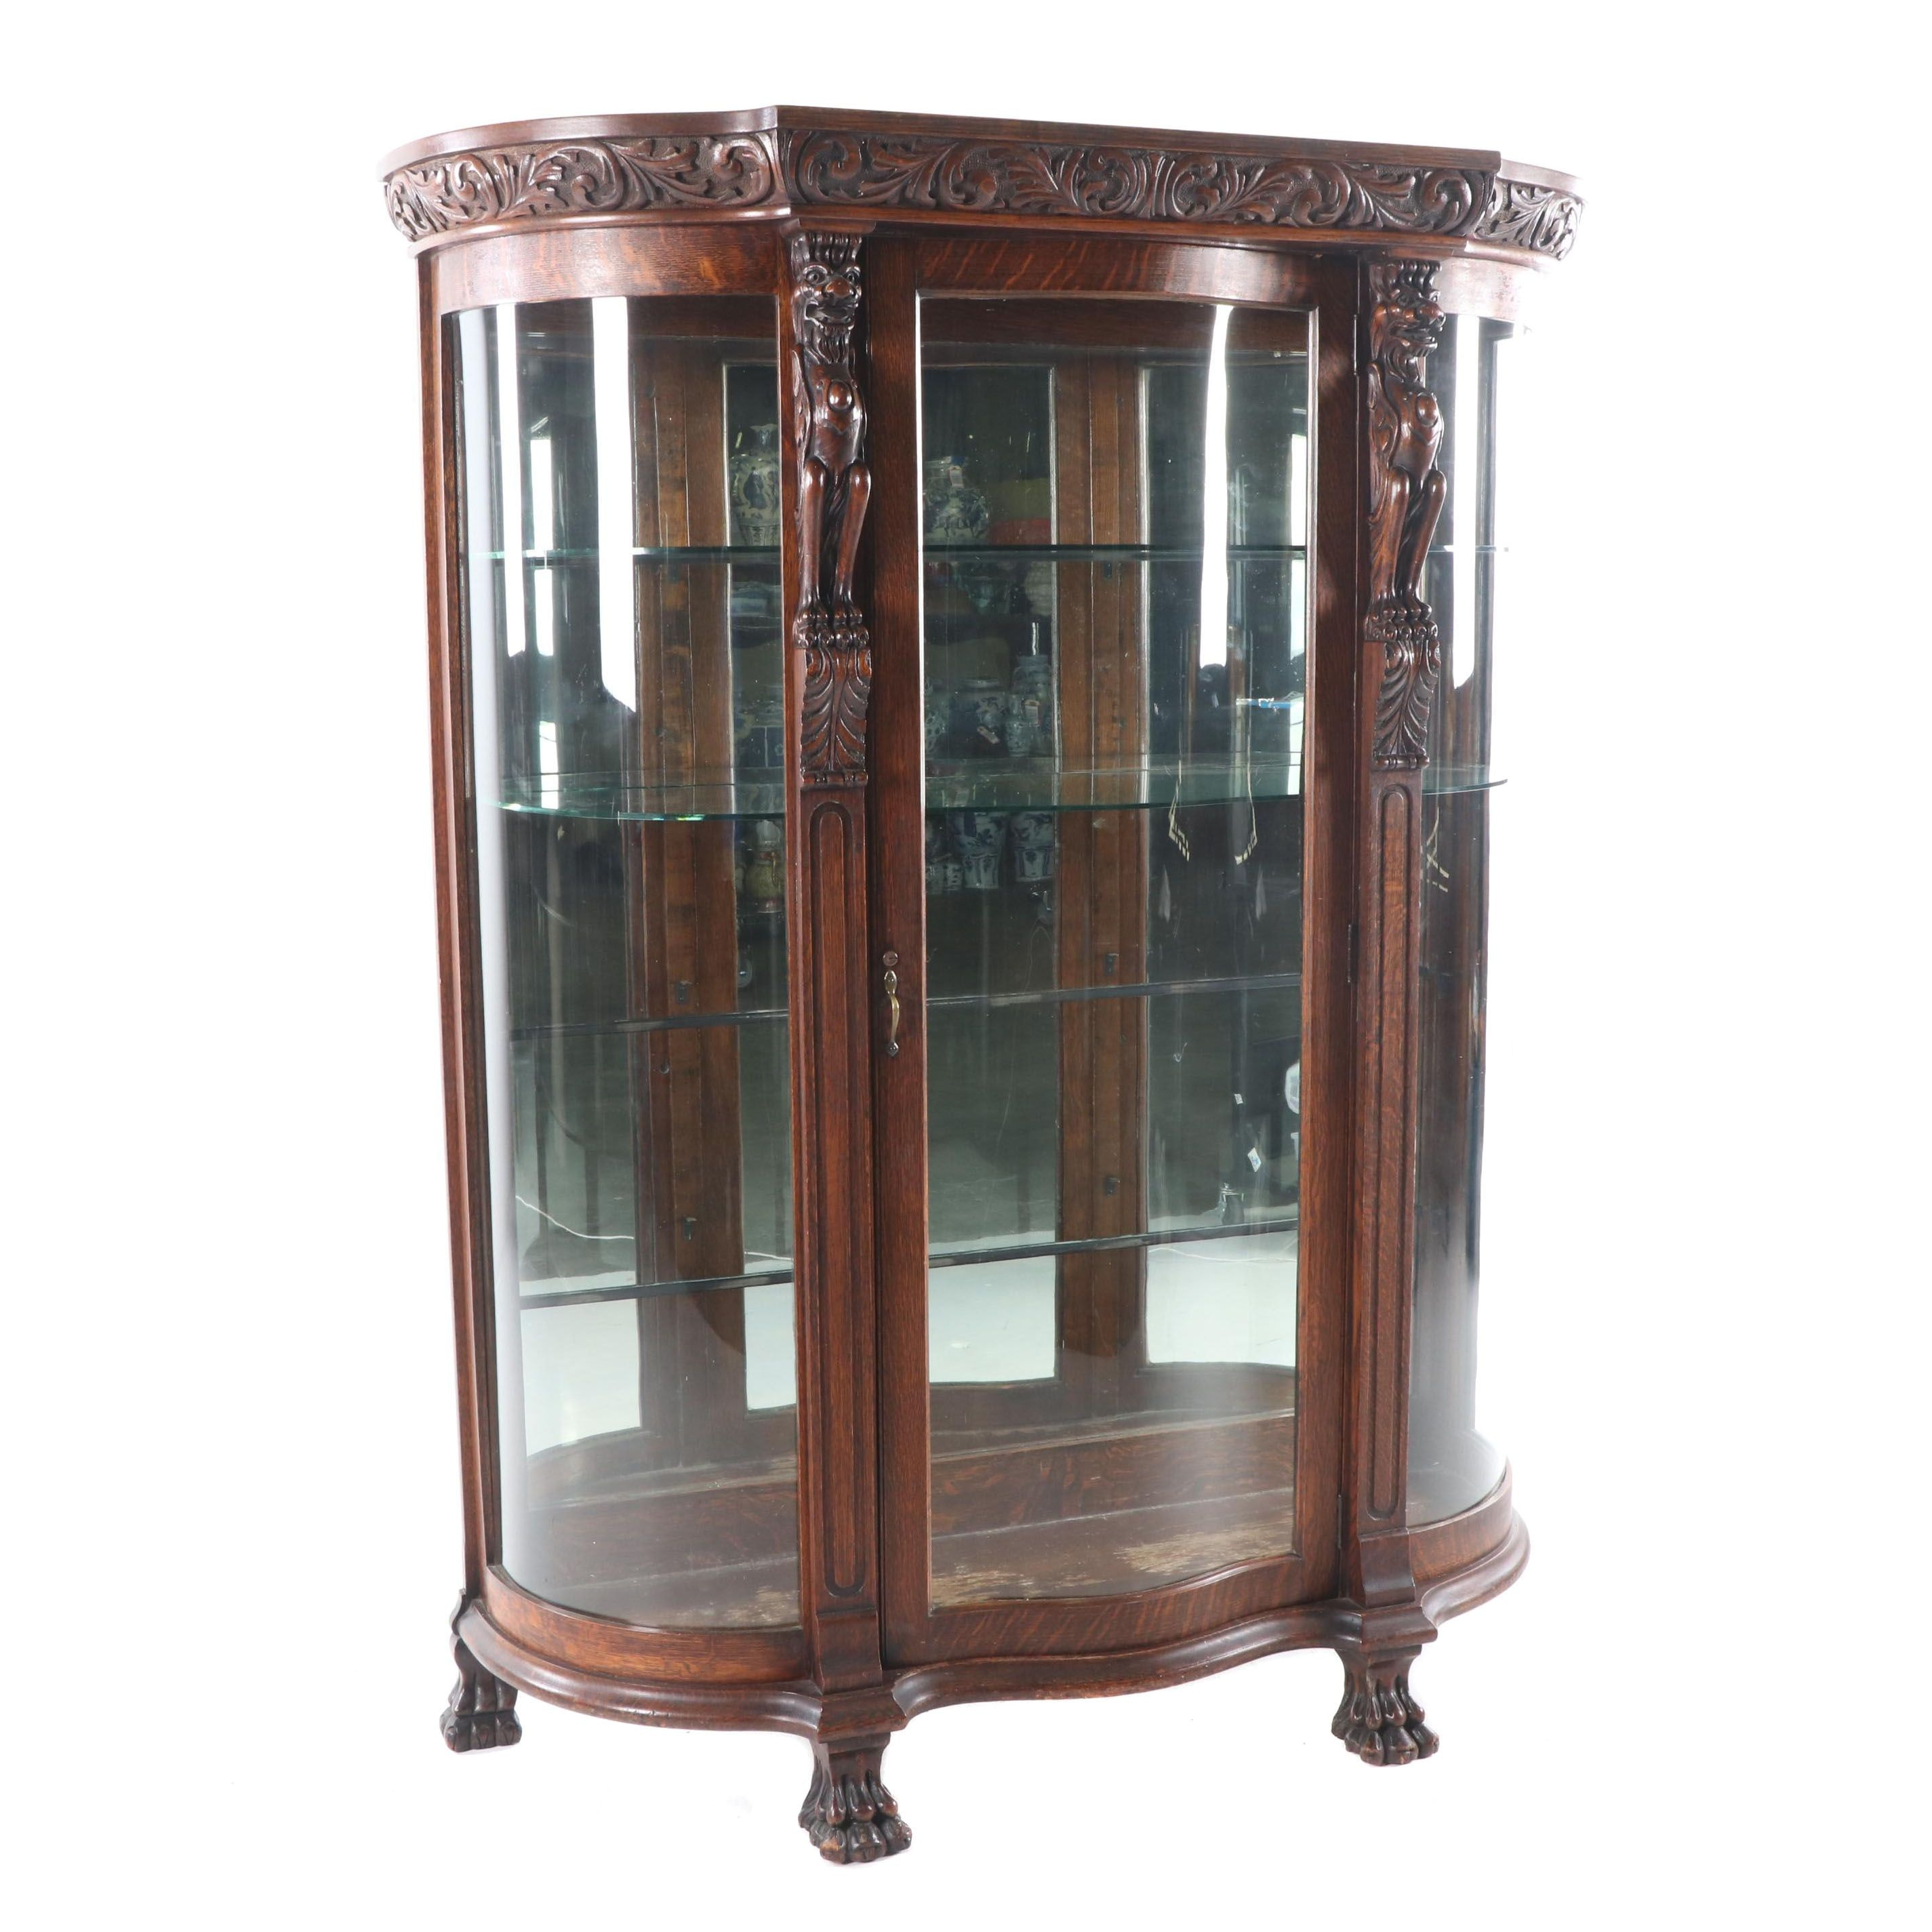 Renaissance Revival Style Carved Oak Display Cabinet, Late 19th/Early 20th C.